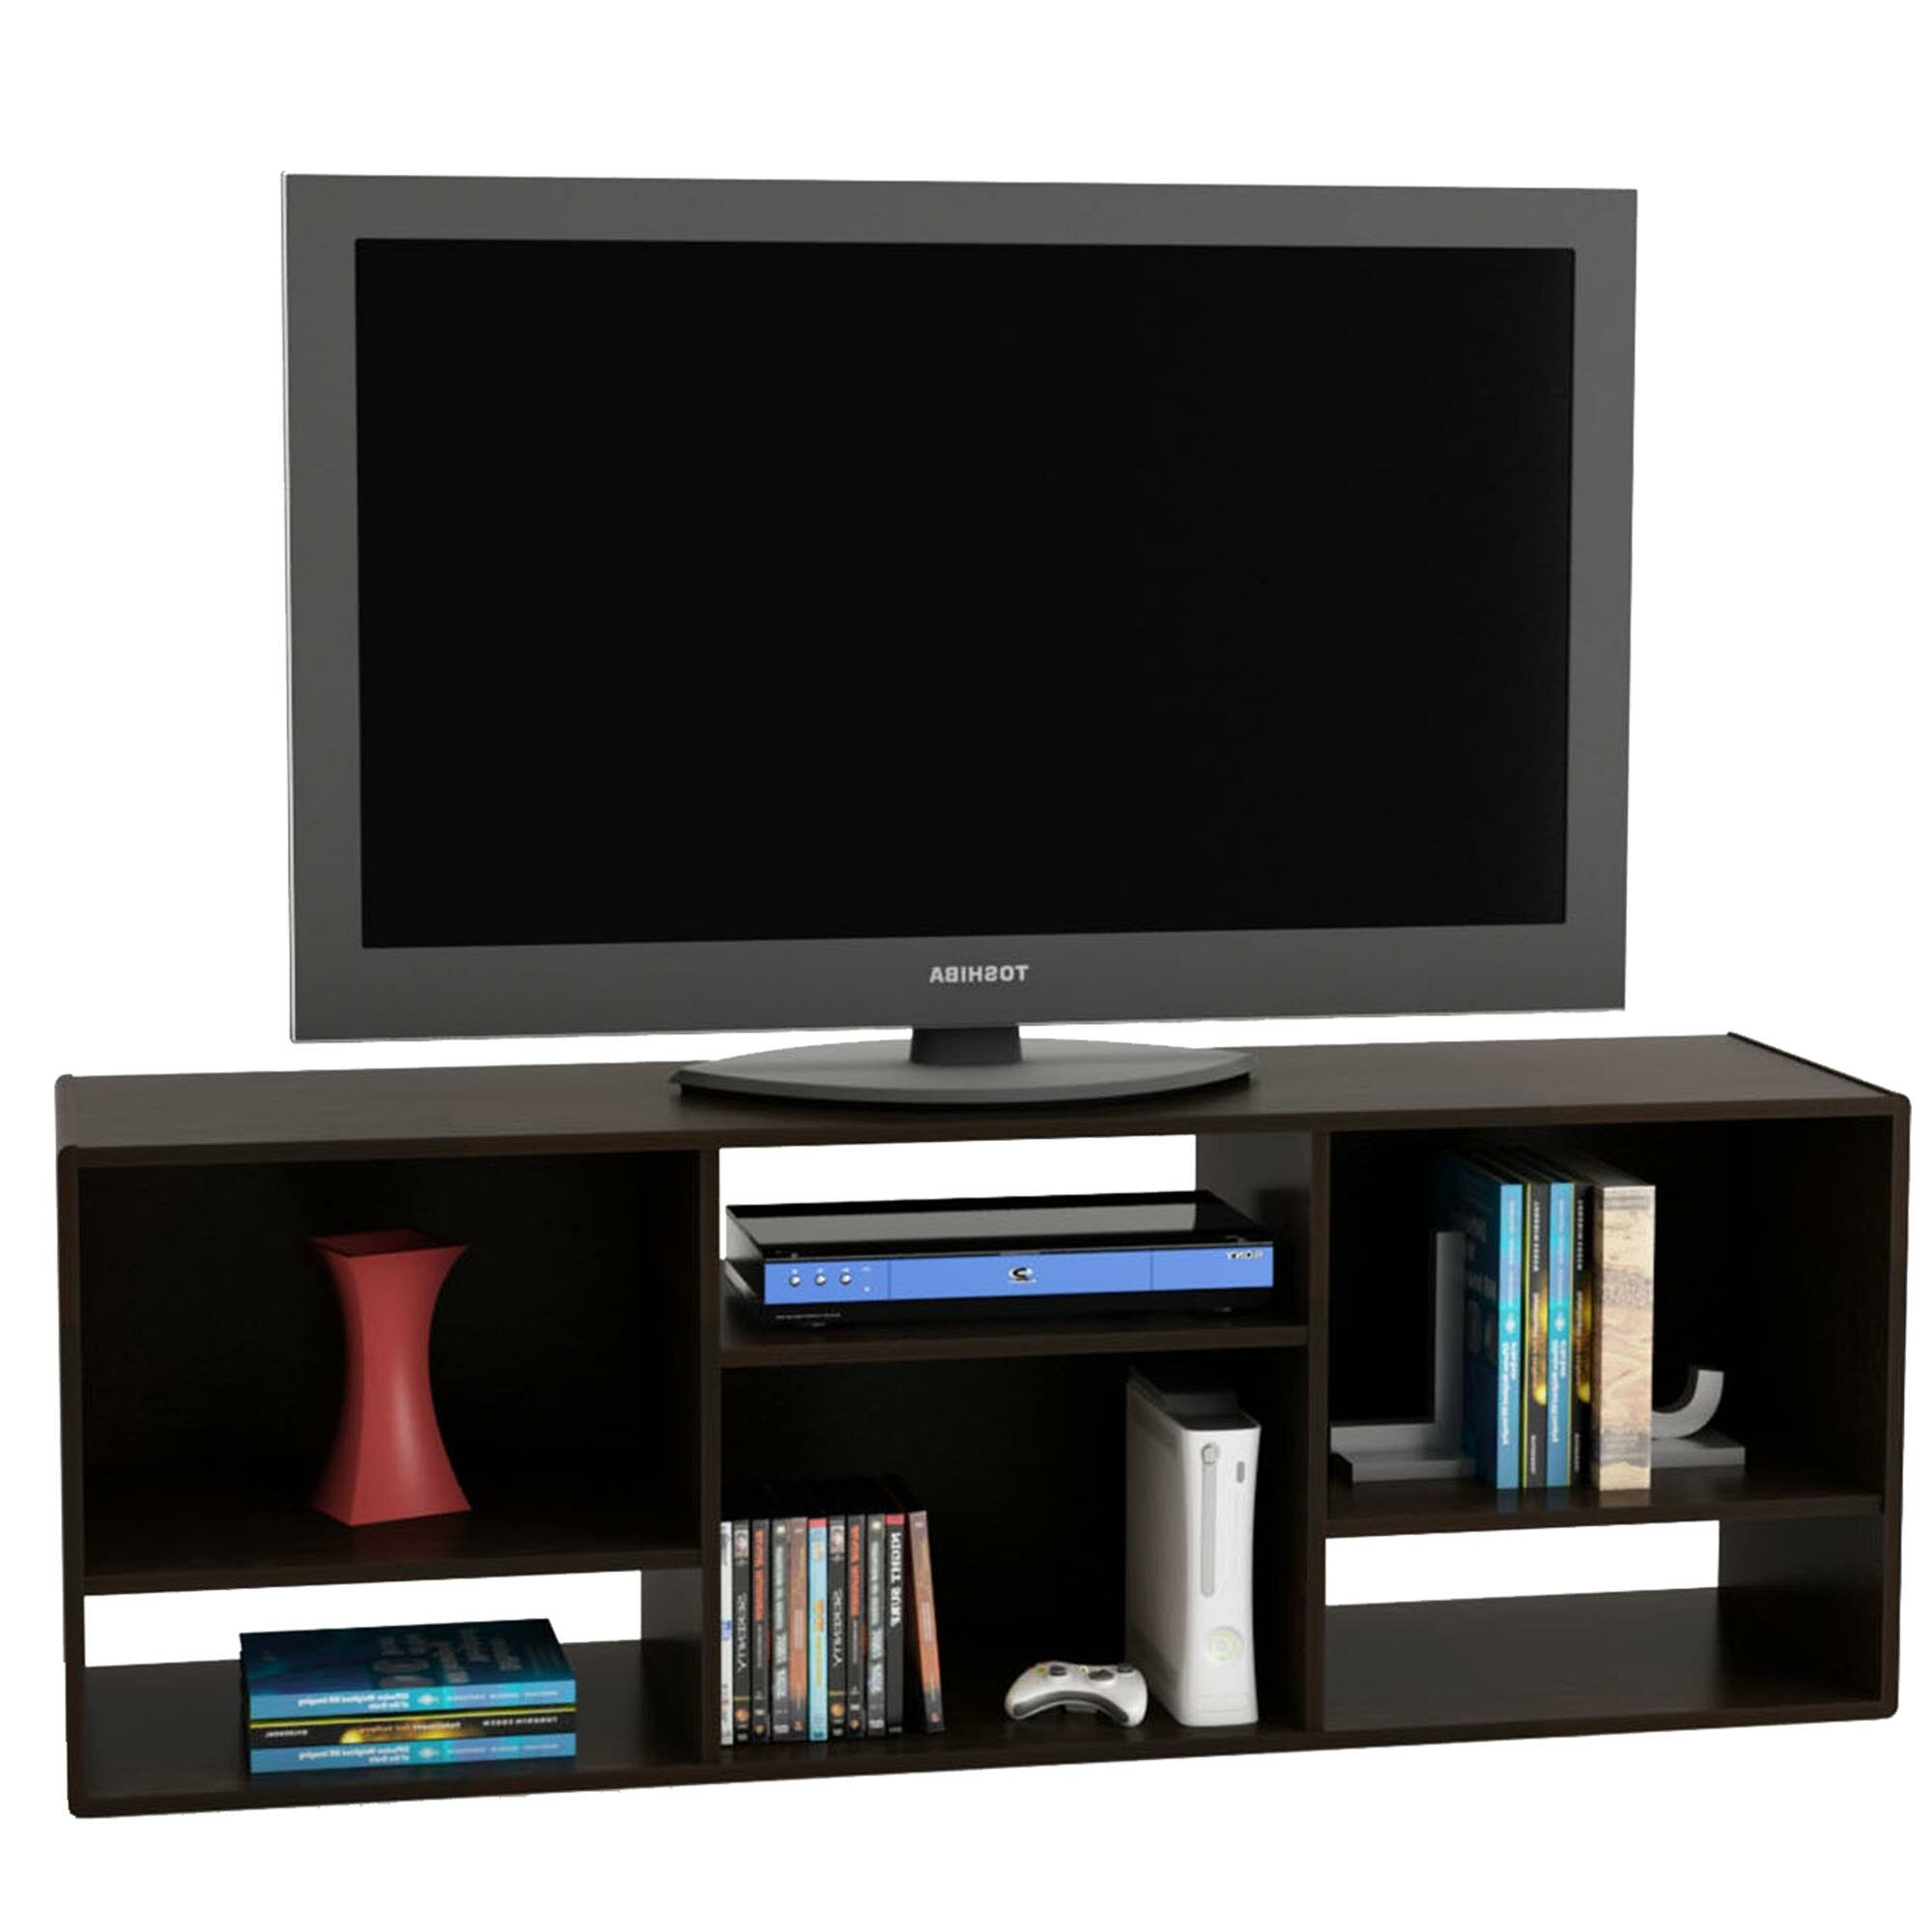 rack t room or couch design tv home designs living cabinet divine pictures white within stunning